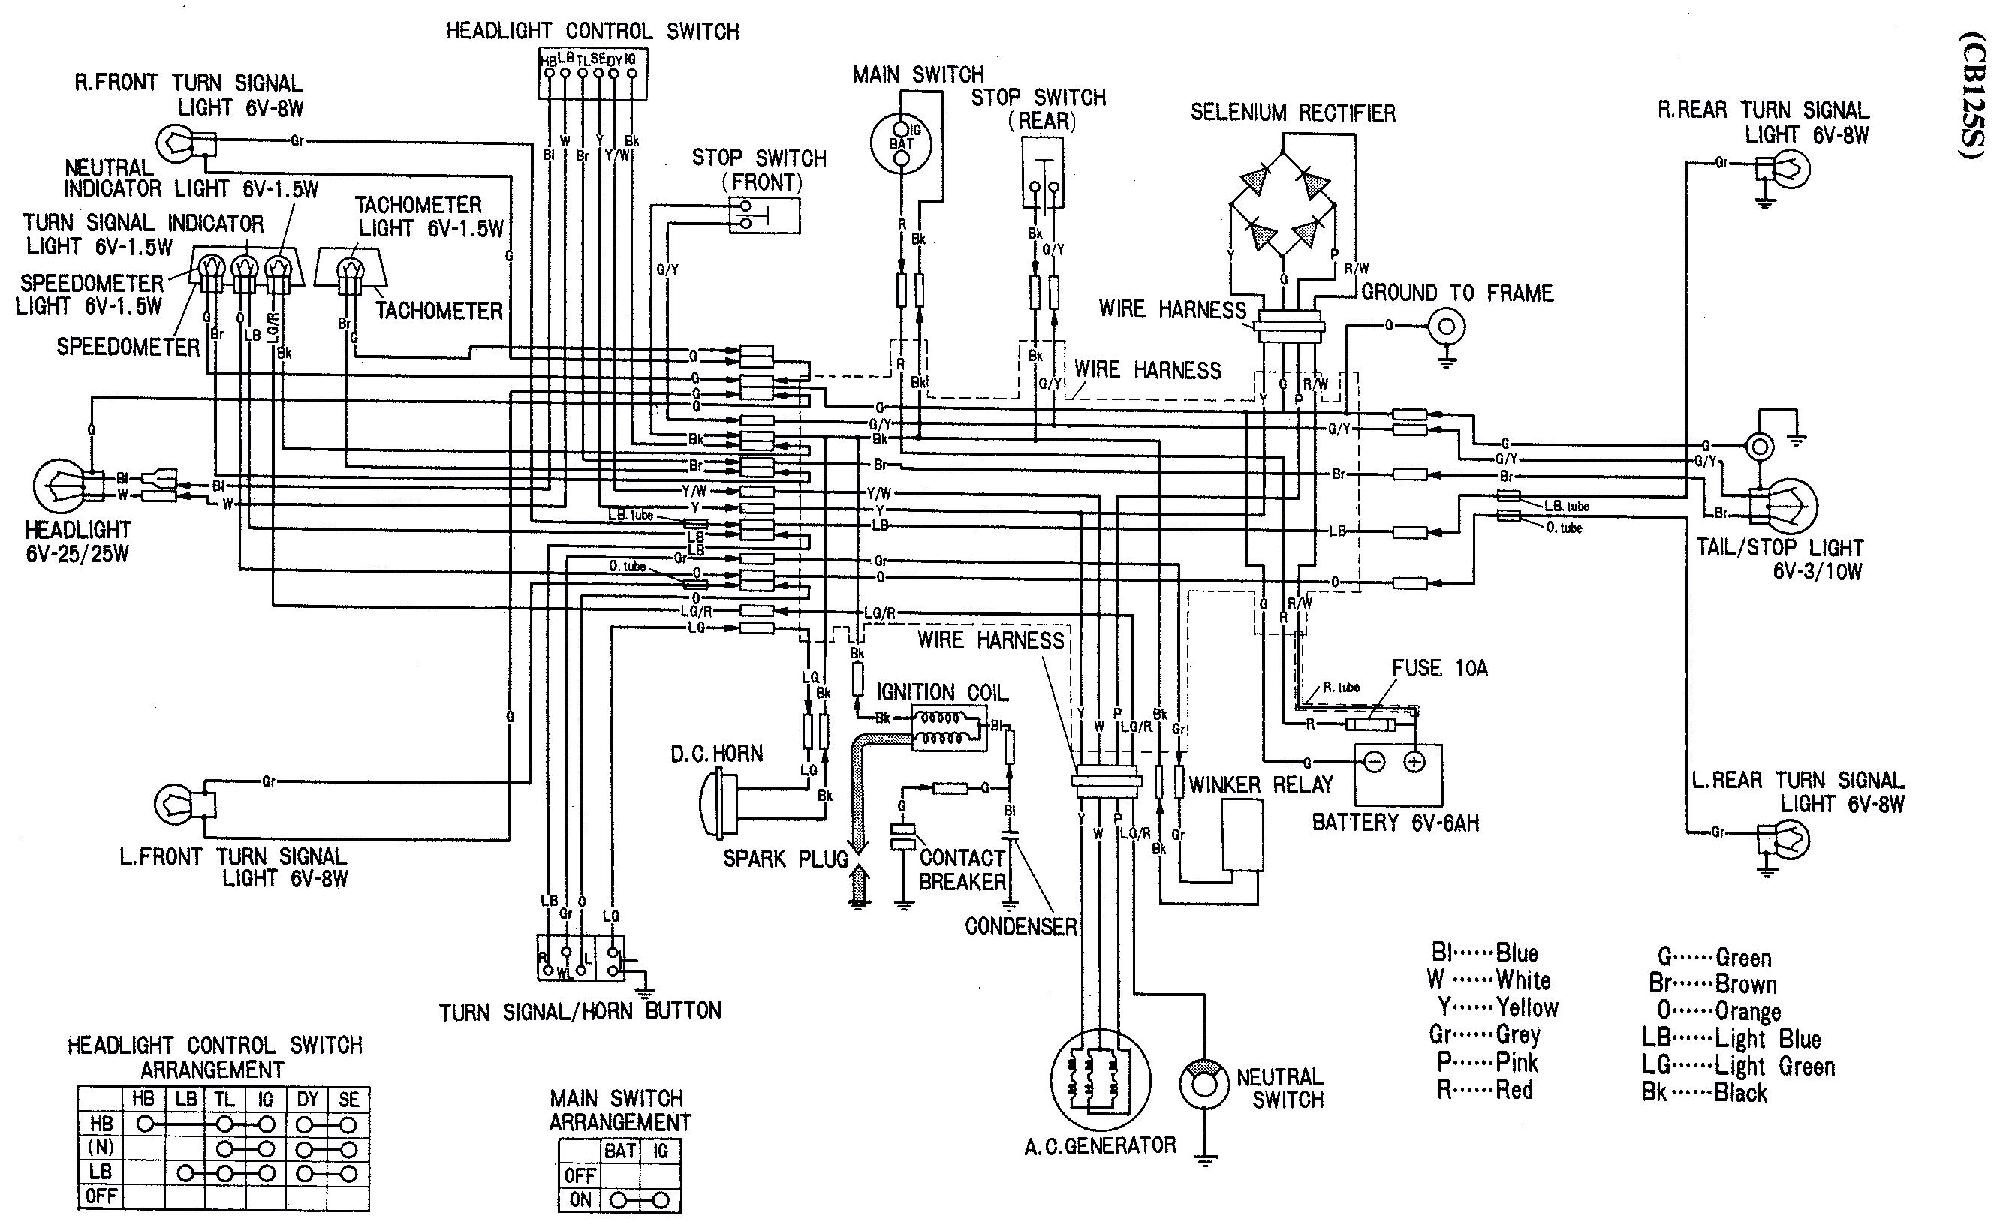 Cb Home Wiring Diagram Schematics Cb125 Diagrams Rh 7 53 Jennifer Retzke De Antenna Connectors